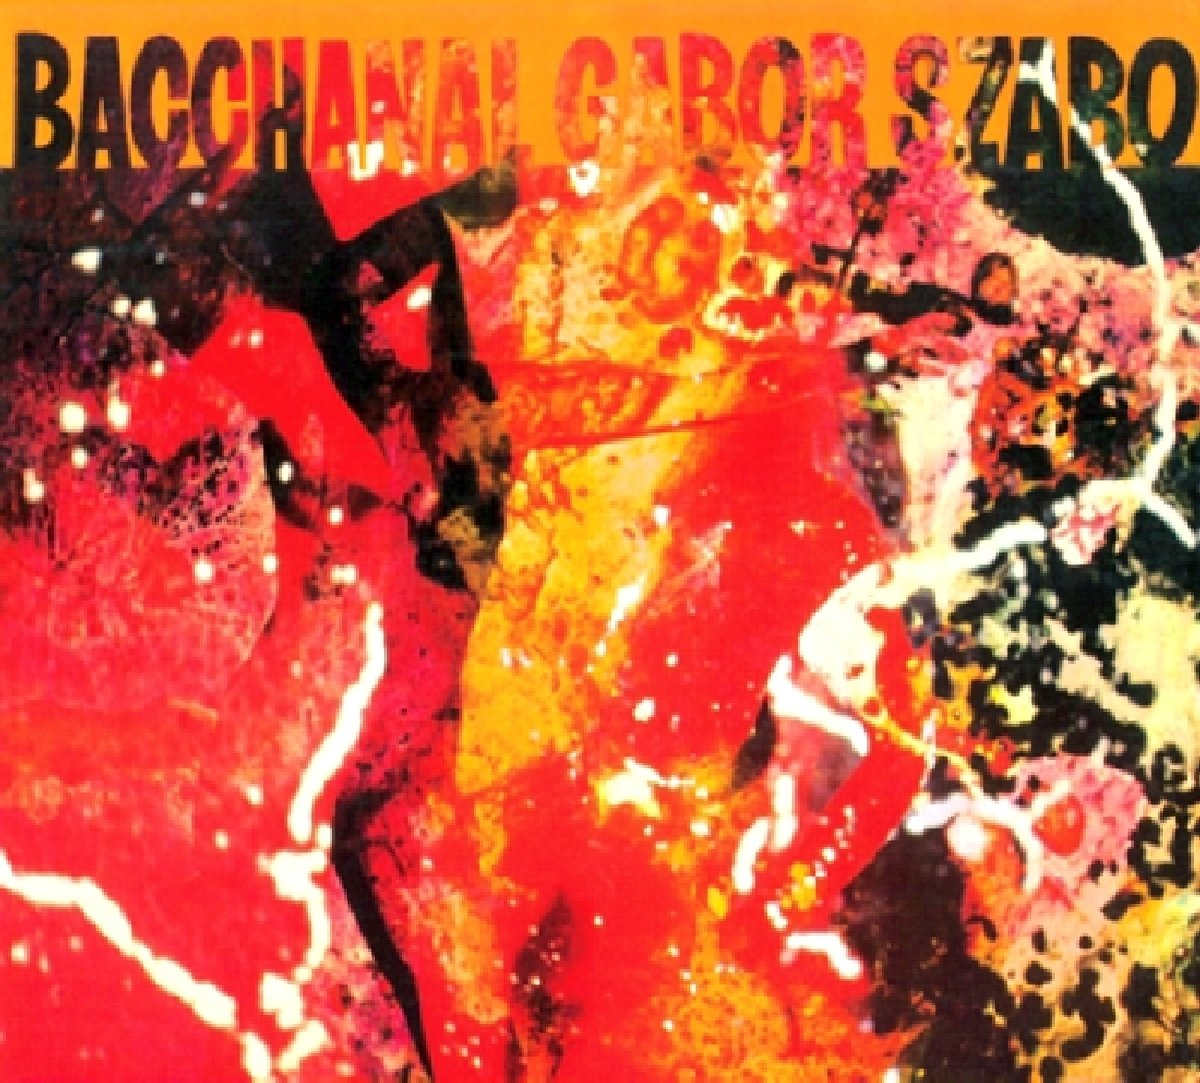 Bacchanal 2021 autumn and winter new Digipack Reservation